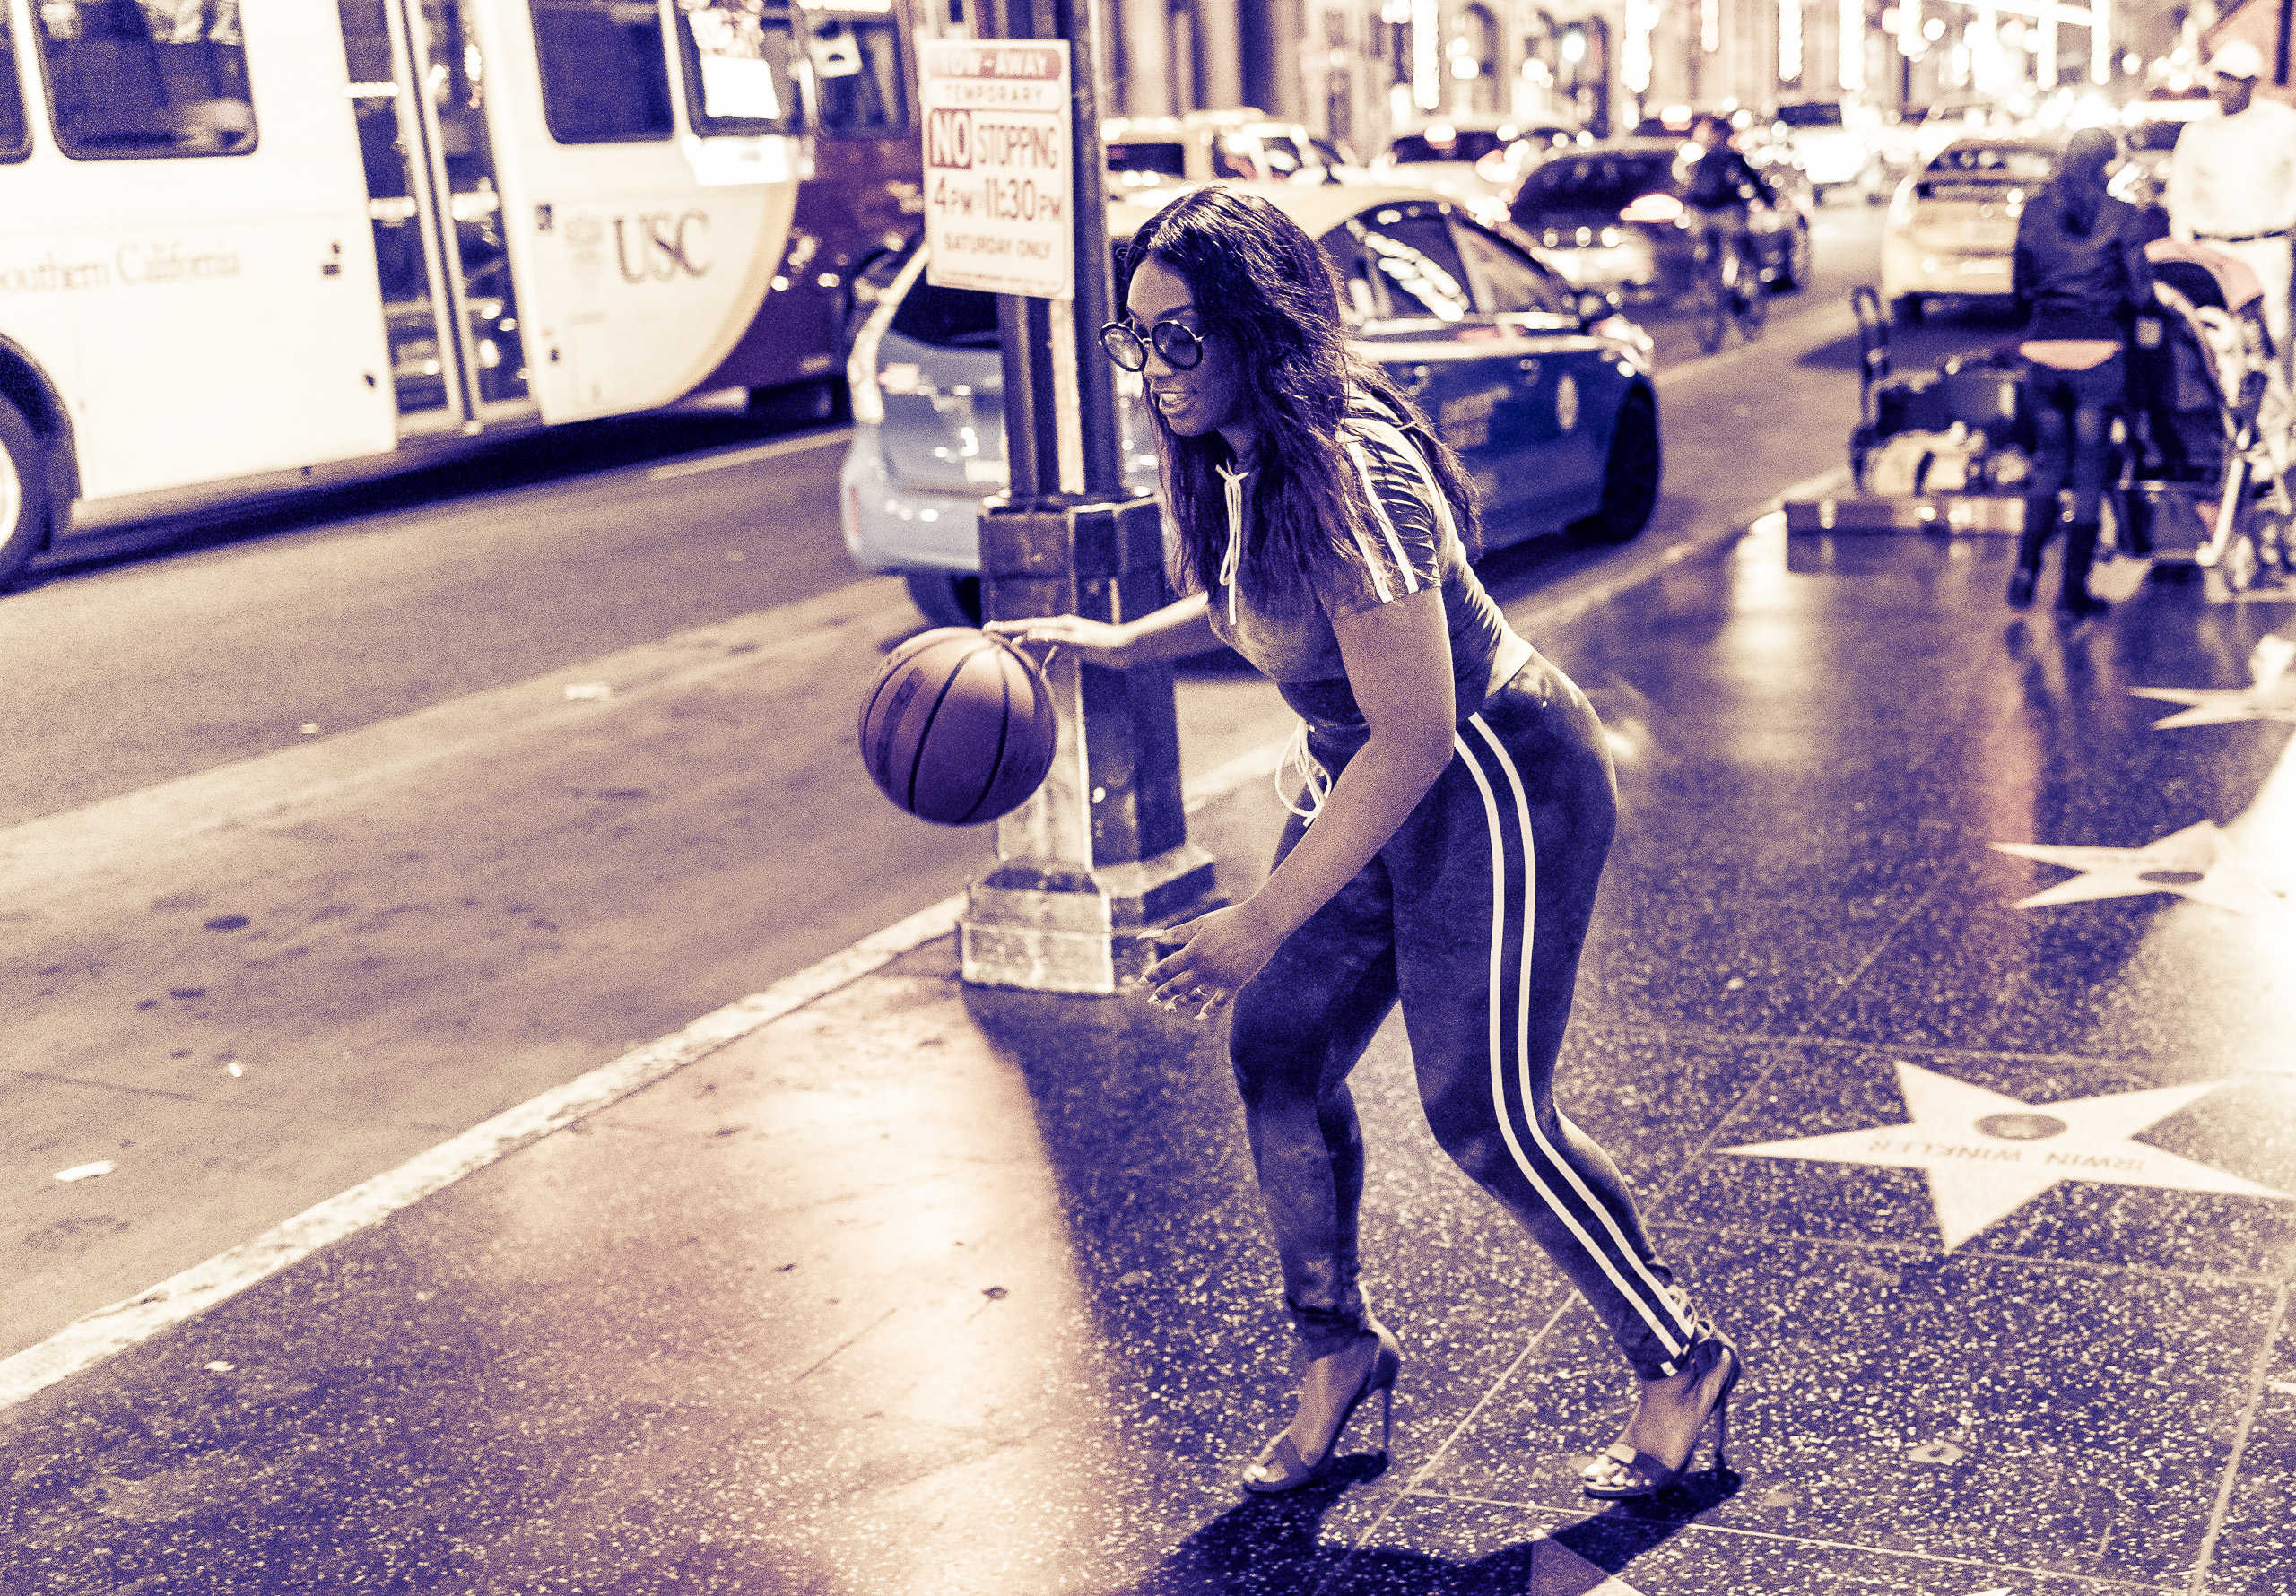 a woman in high heels dribbles a basketball on Hollywood Blvd.